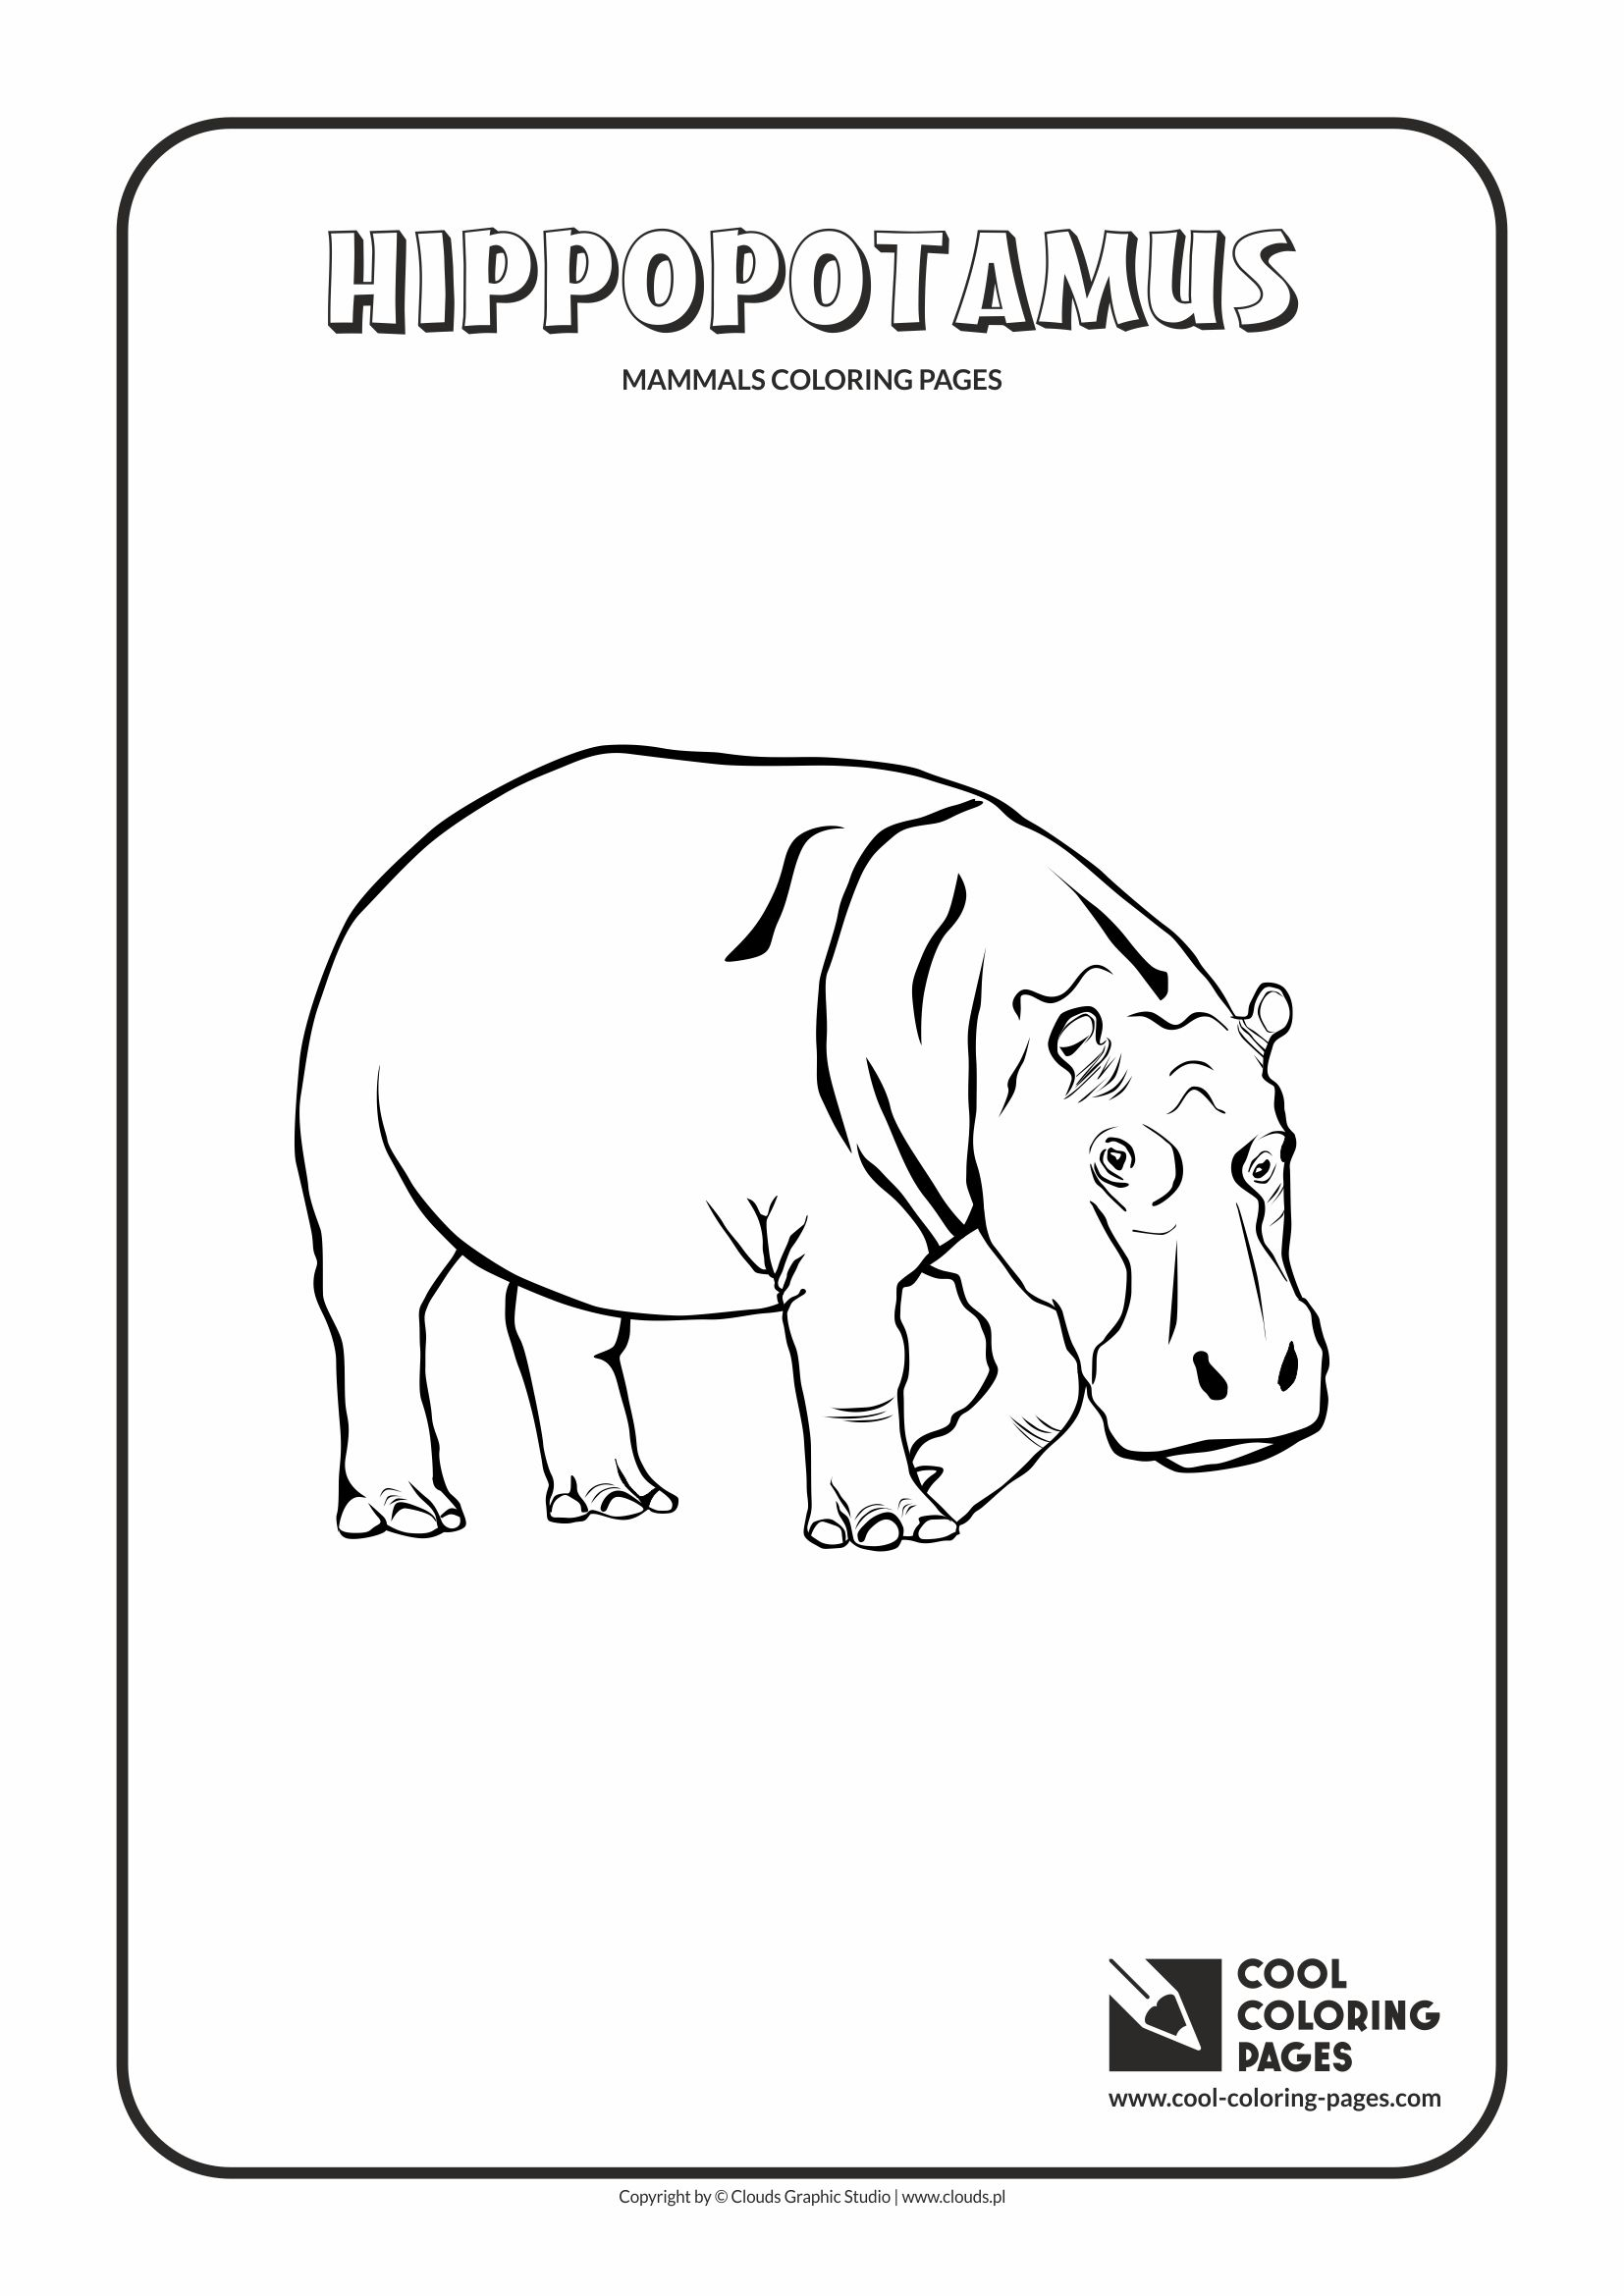 Cool Coloring Pages - Animals / Hippopotamus / Coloring page with hippopotamus